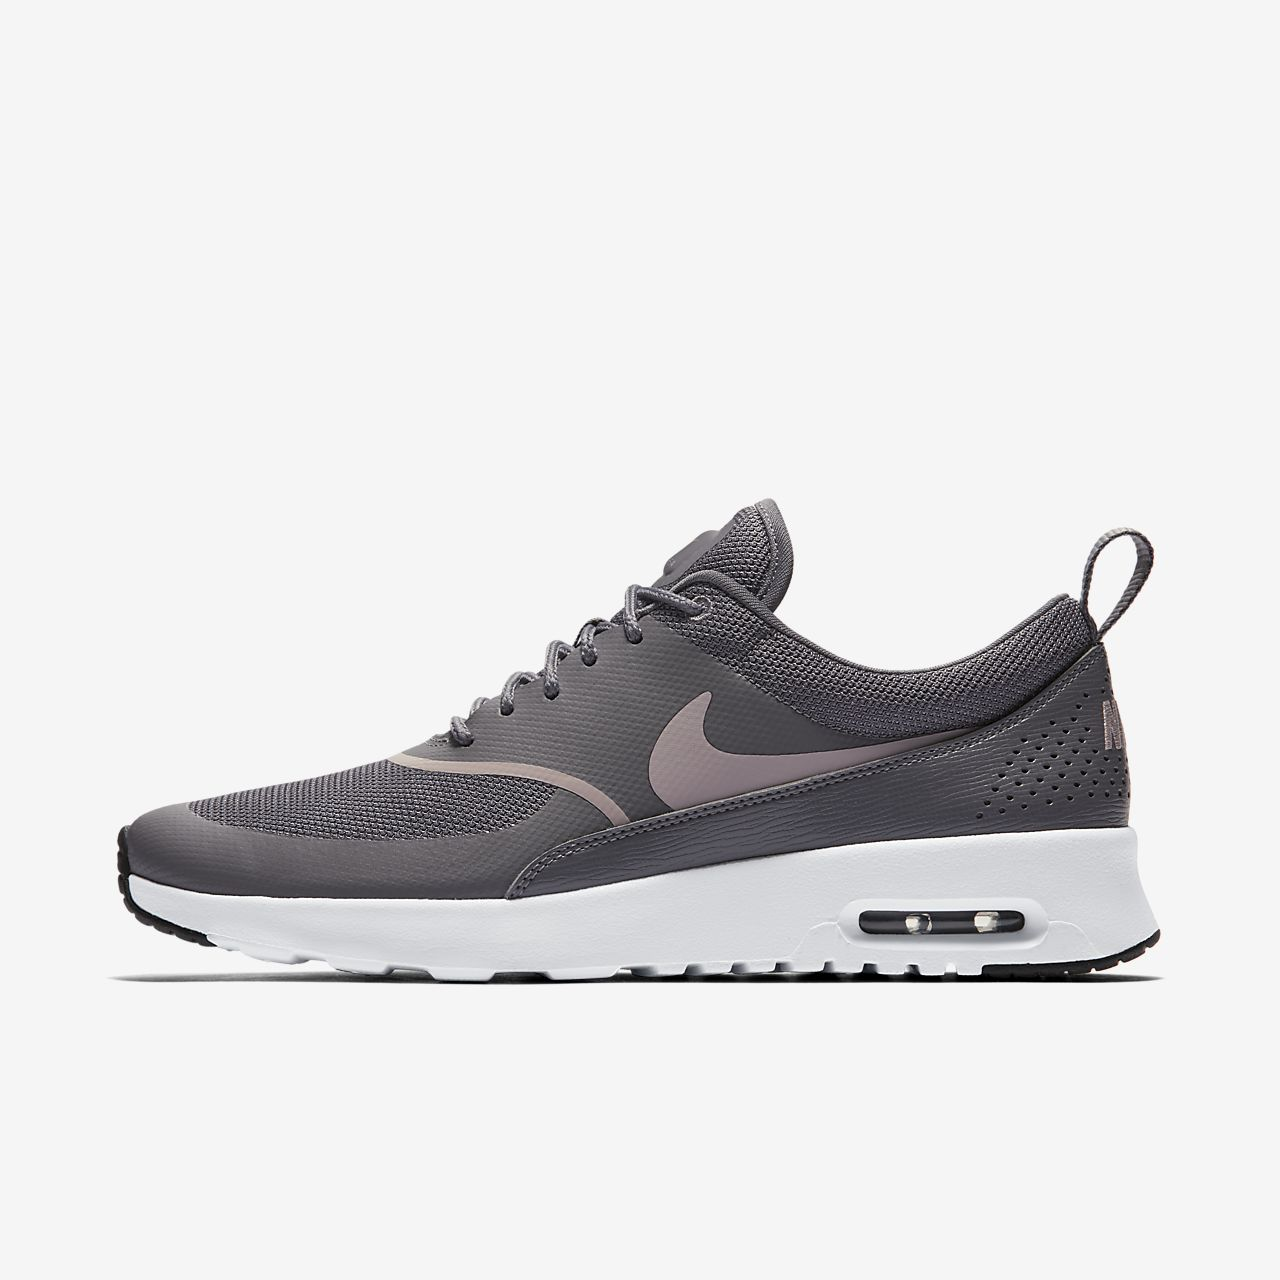 aur max thea, ... Nike Air Max Thea Women's Shoe